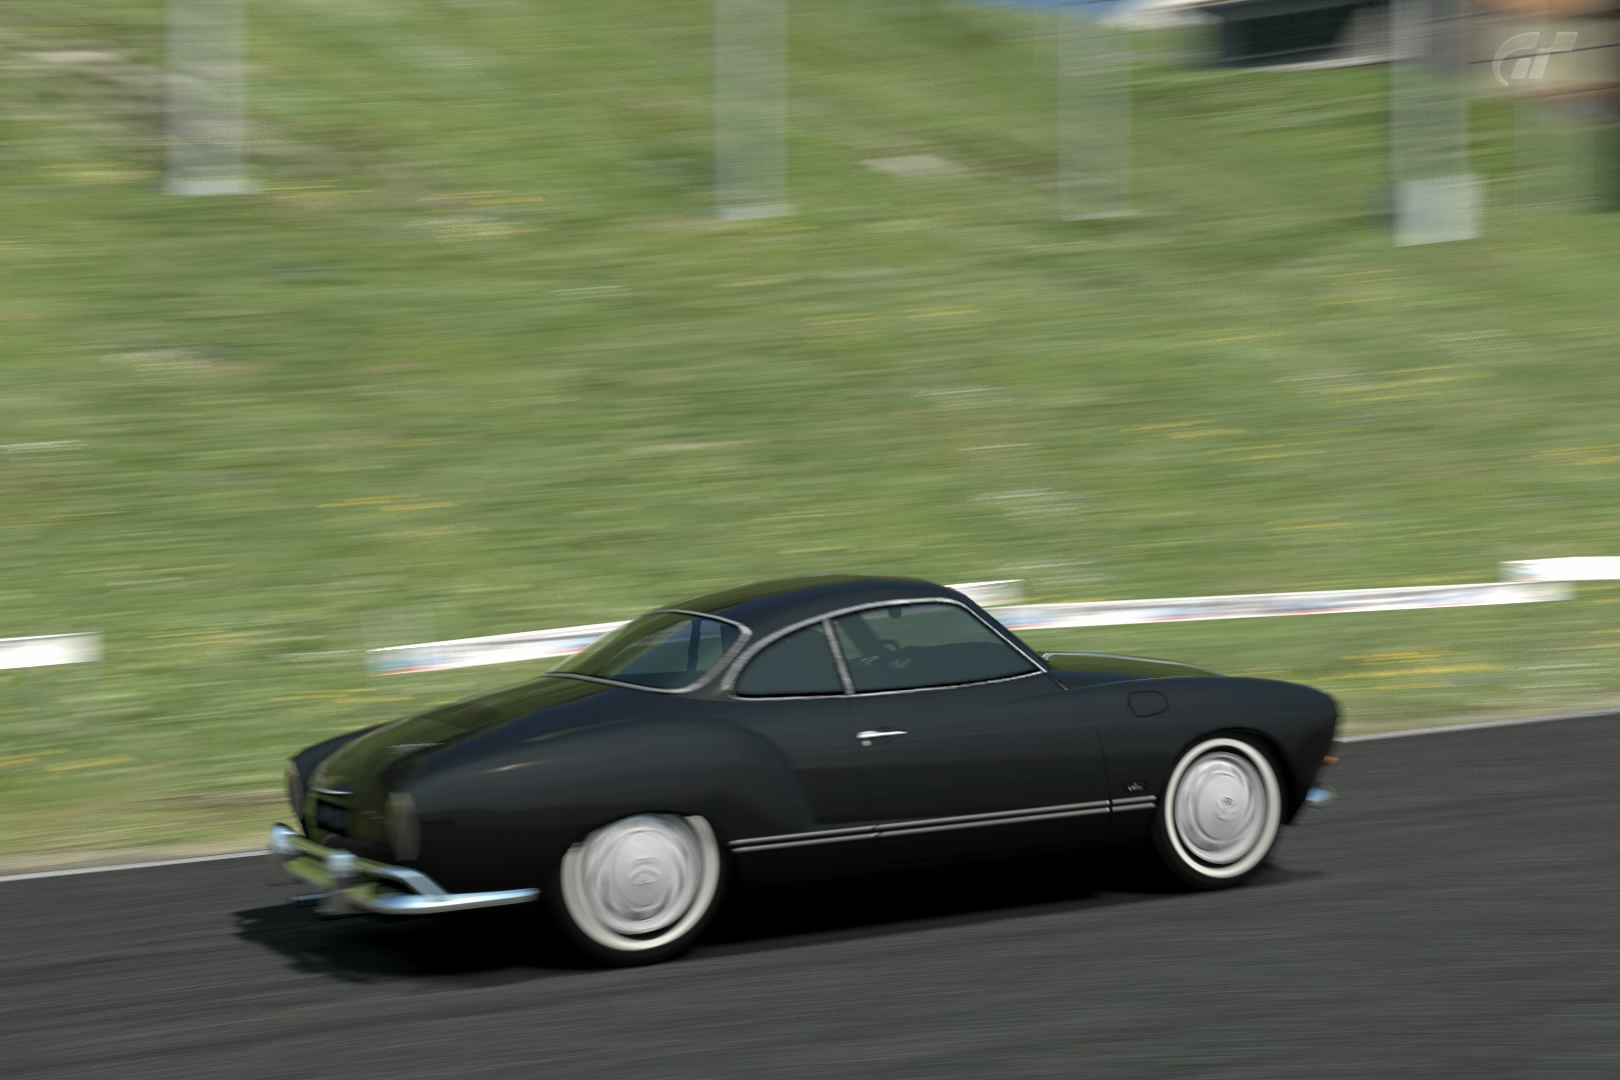 black_karmannghia.jpg